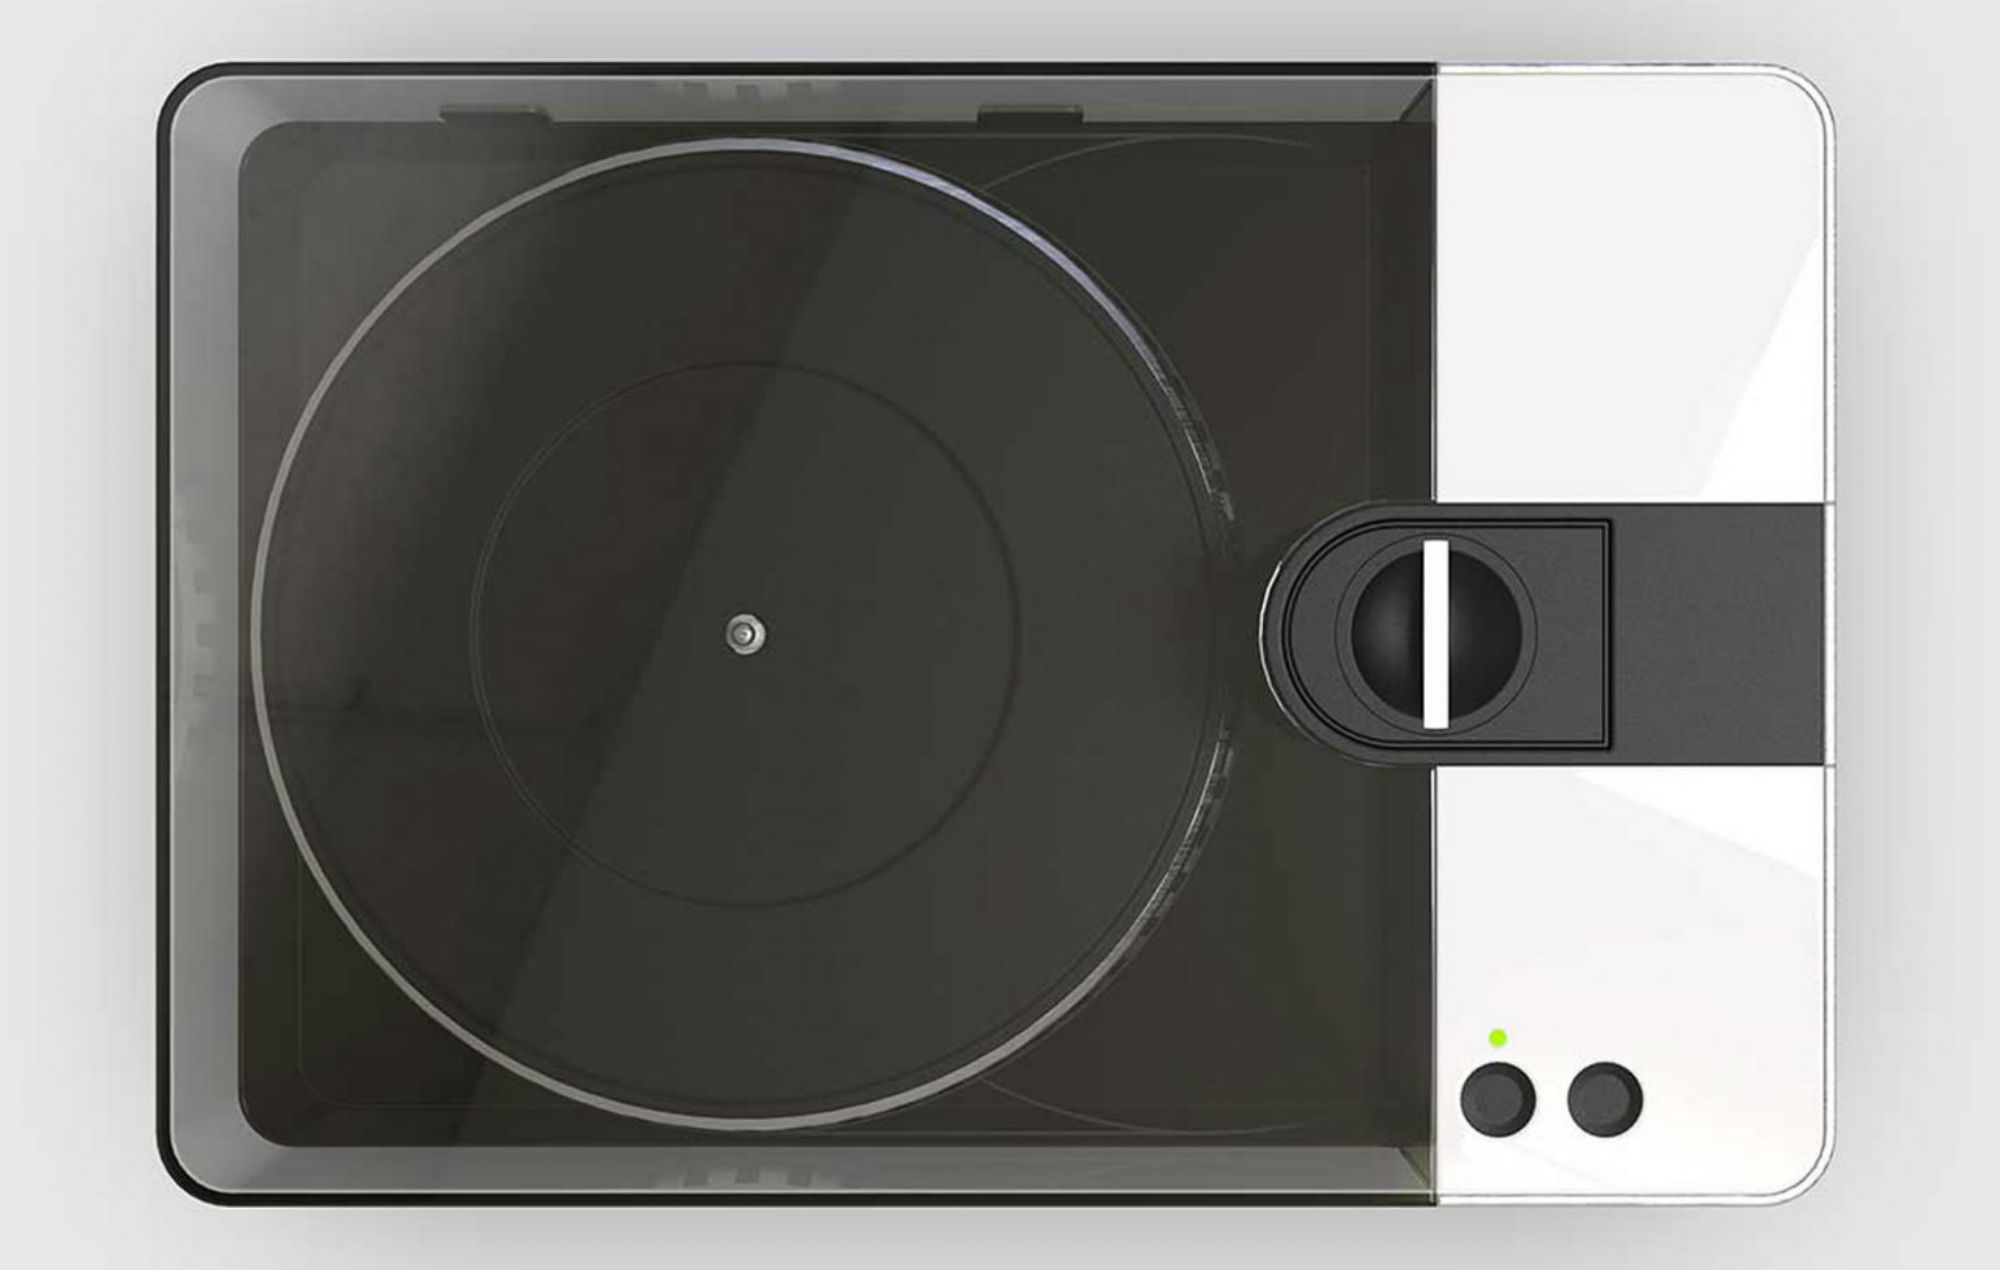 You can make your own vinyl records with this machine